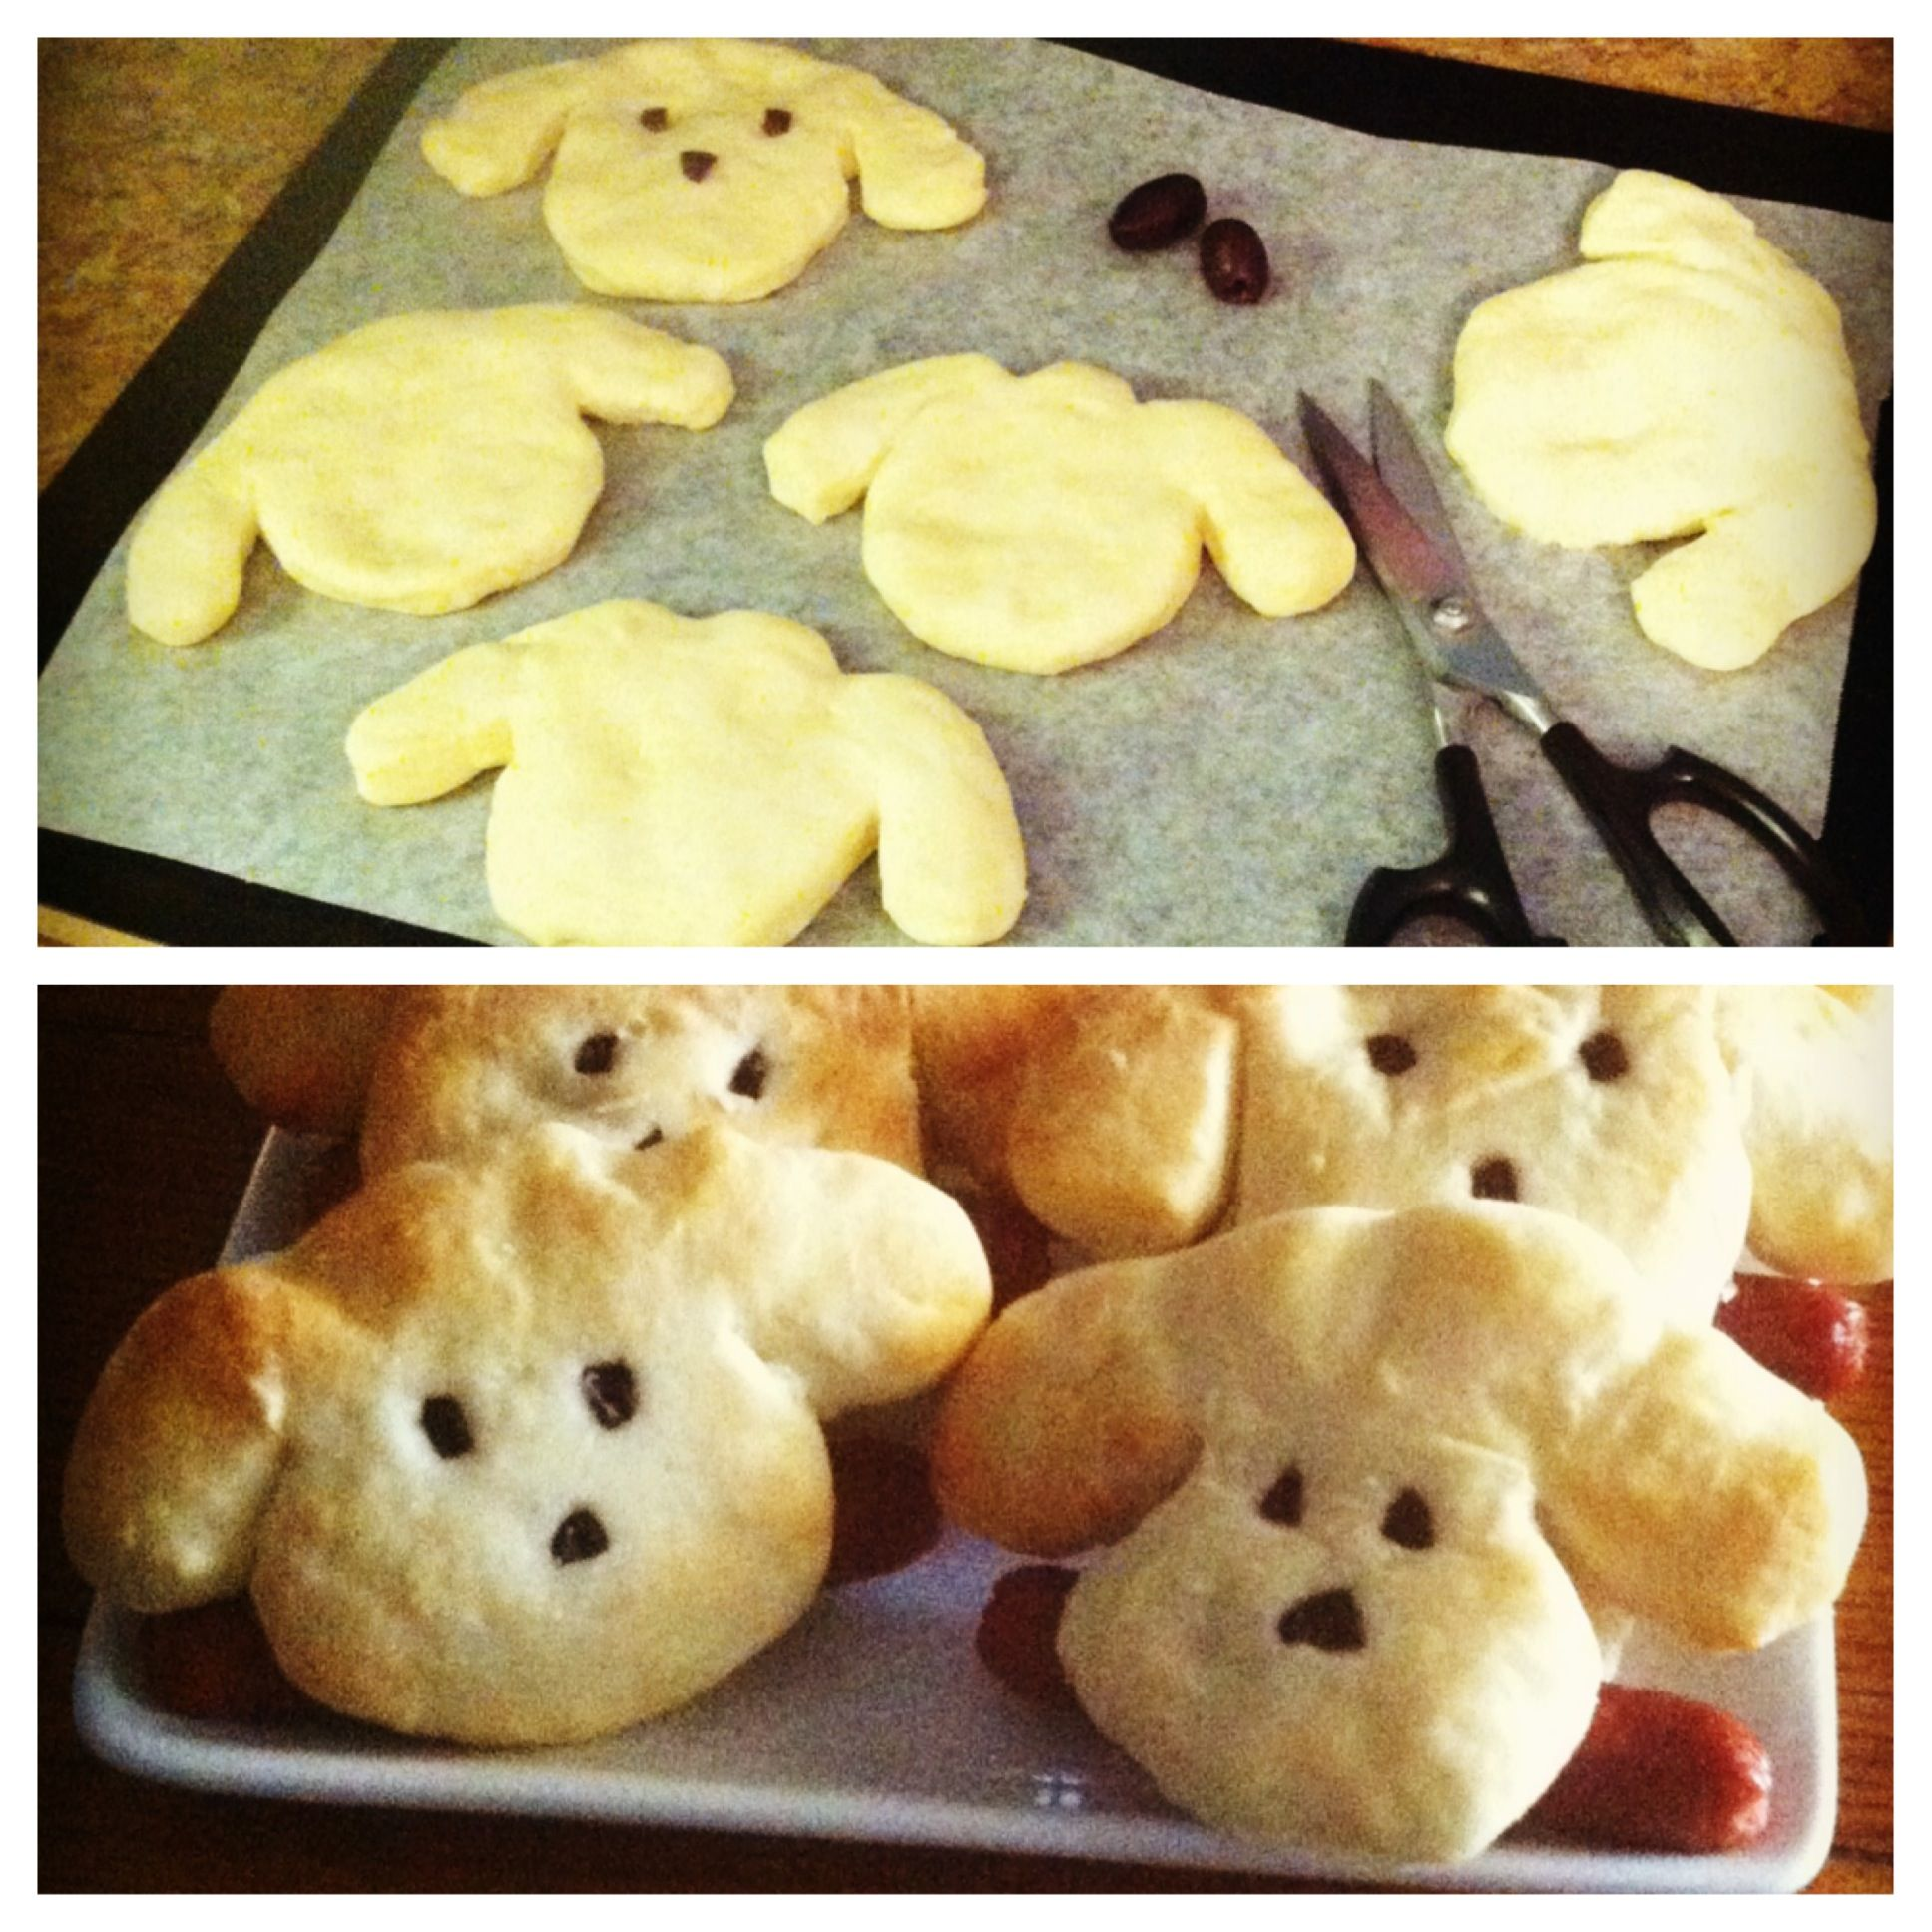 Puppy Buns For Hot Dogs. Made These For My Daughter's